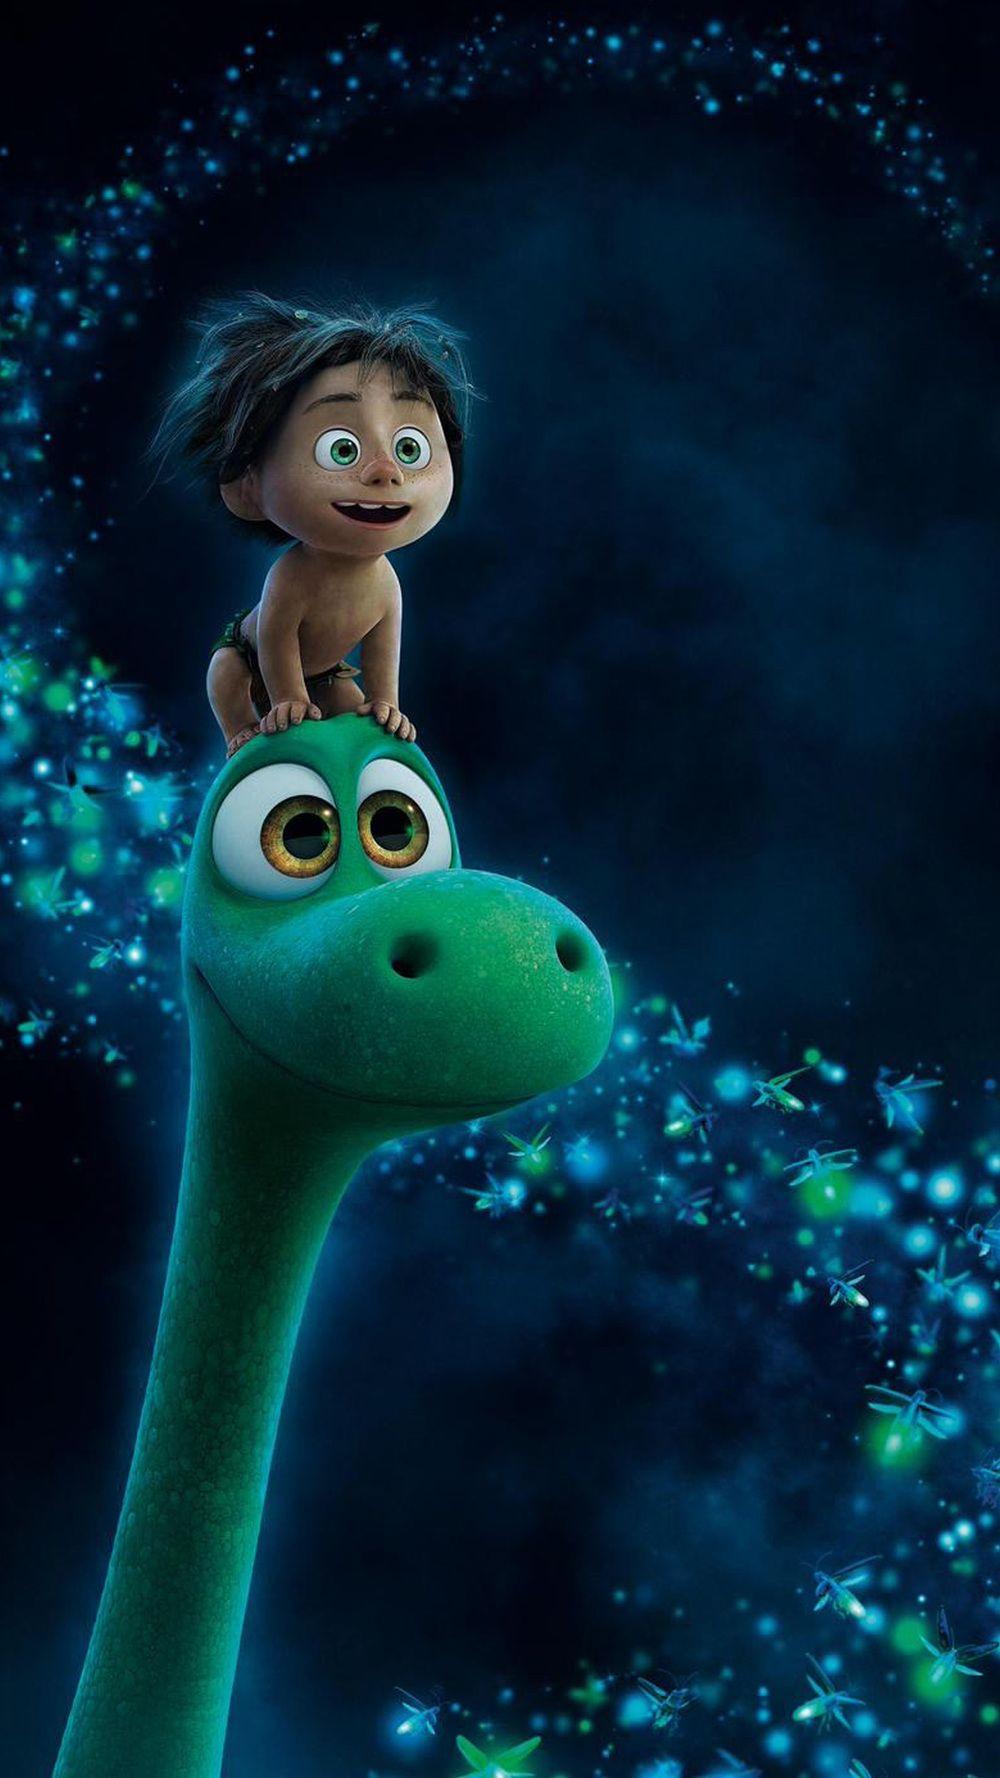 The Good Dinosaur Downloadable Wallpaper For Ios Android Phones For The Love Of Pixar Dinosaur Movie The Good Dinosaur Movie Wallpapers